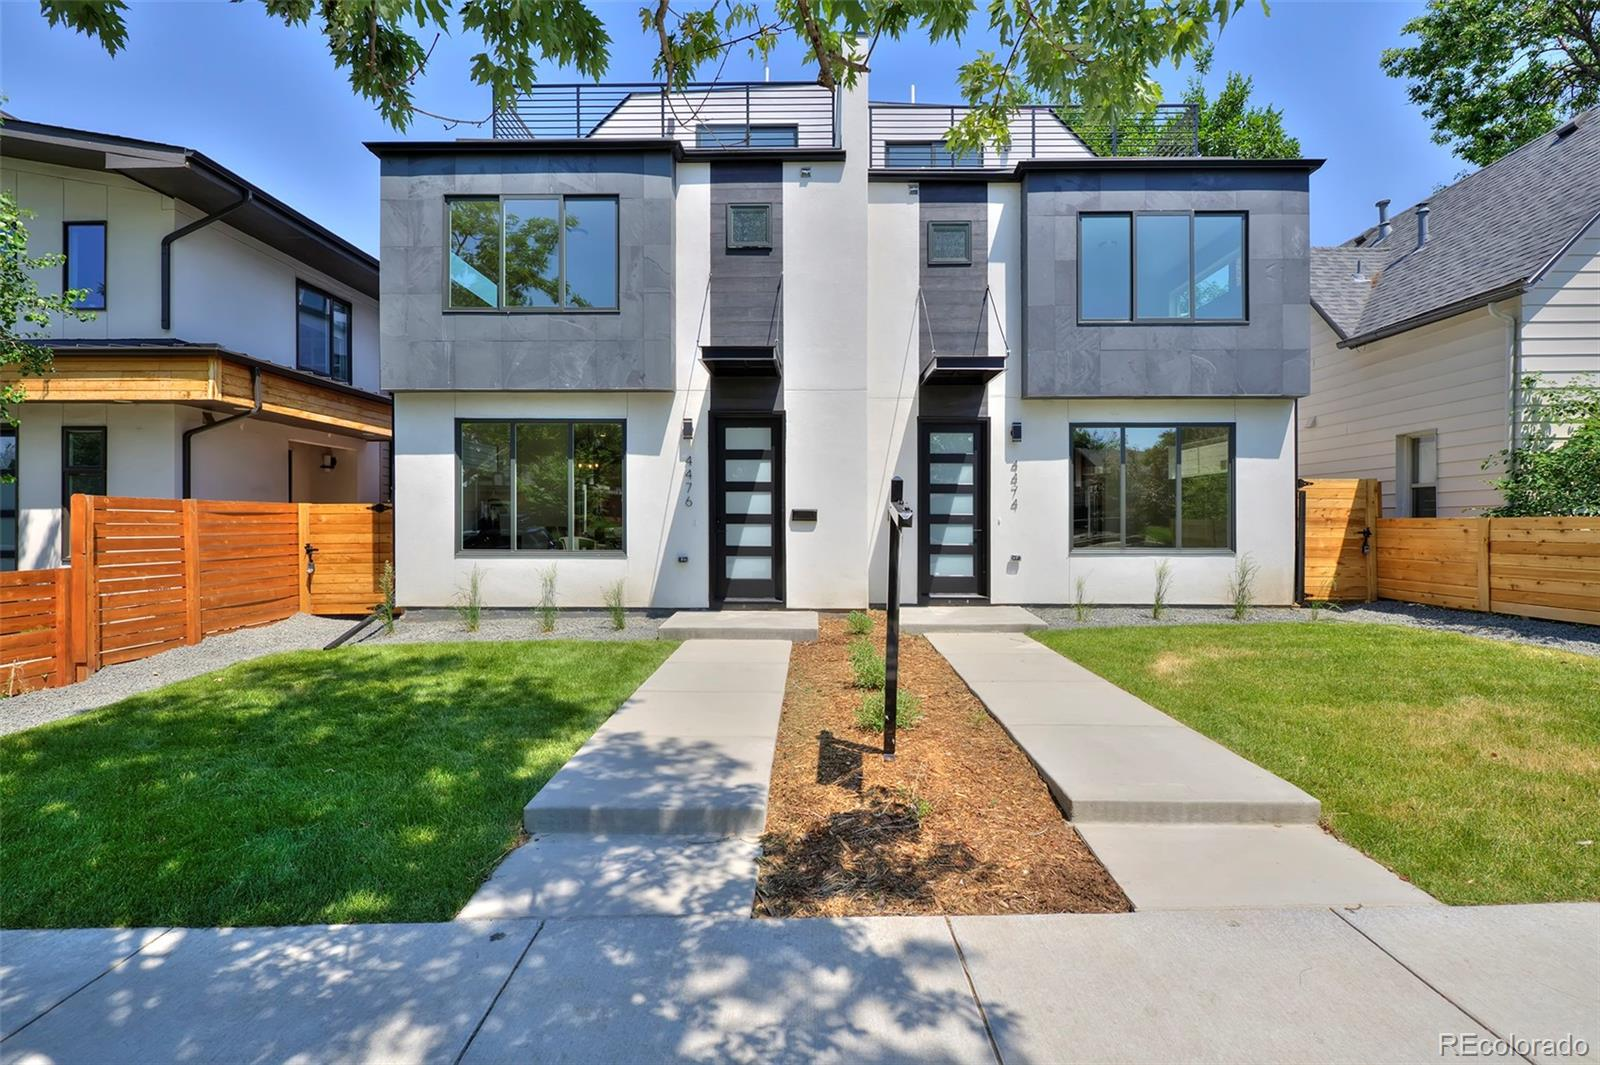 MLS# 6473036 - 1 - 4474 Raleigh Street, Denver, CO 80212